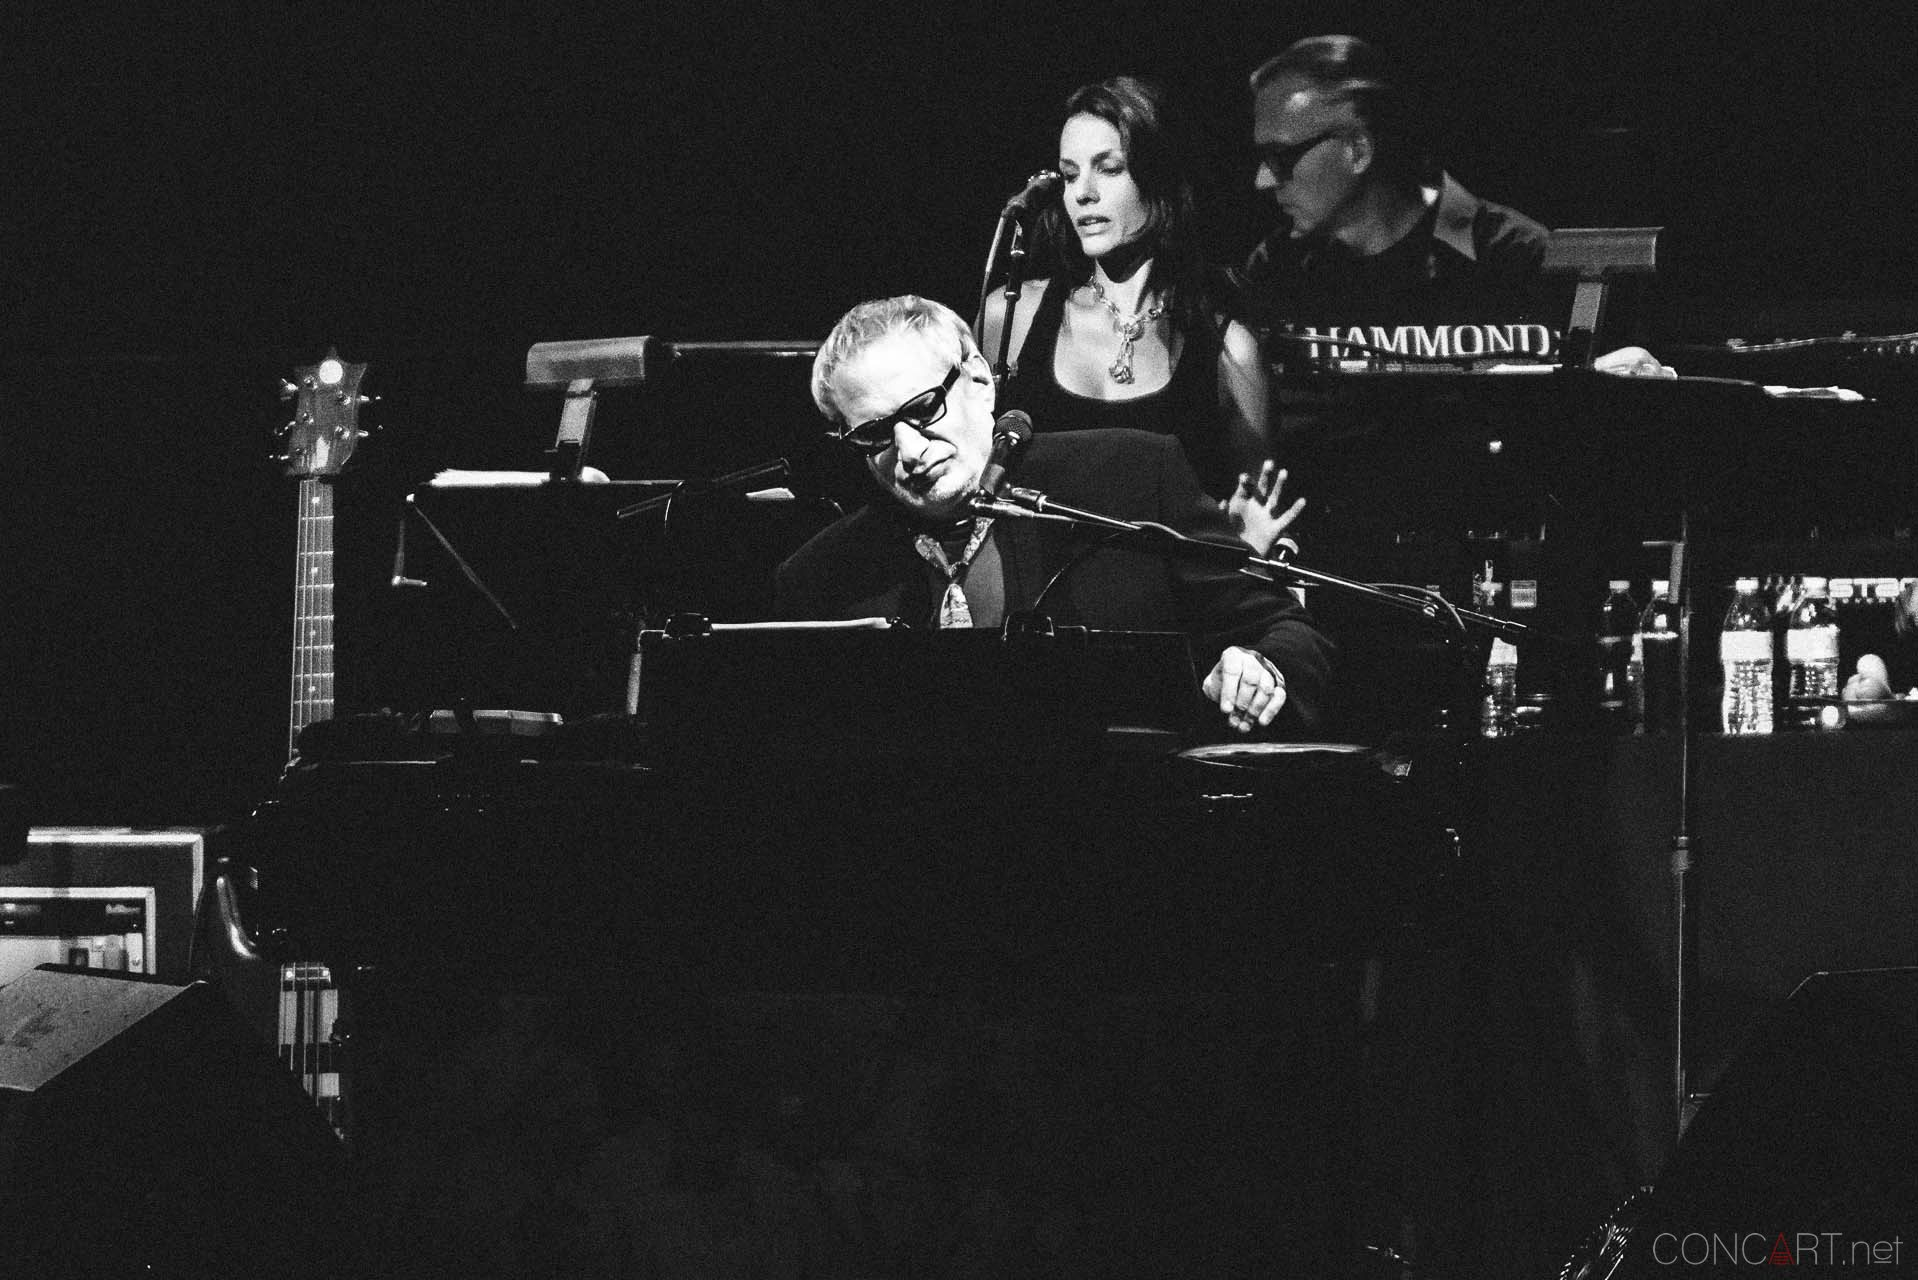 steely_dan_live_old_national_murat_theatre_indianapolis_2013-26